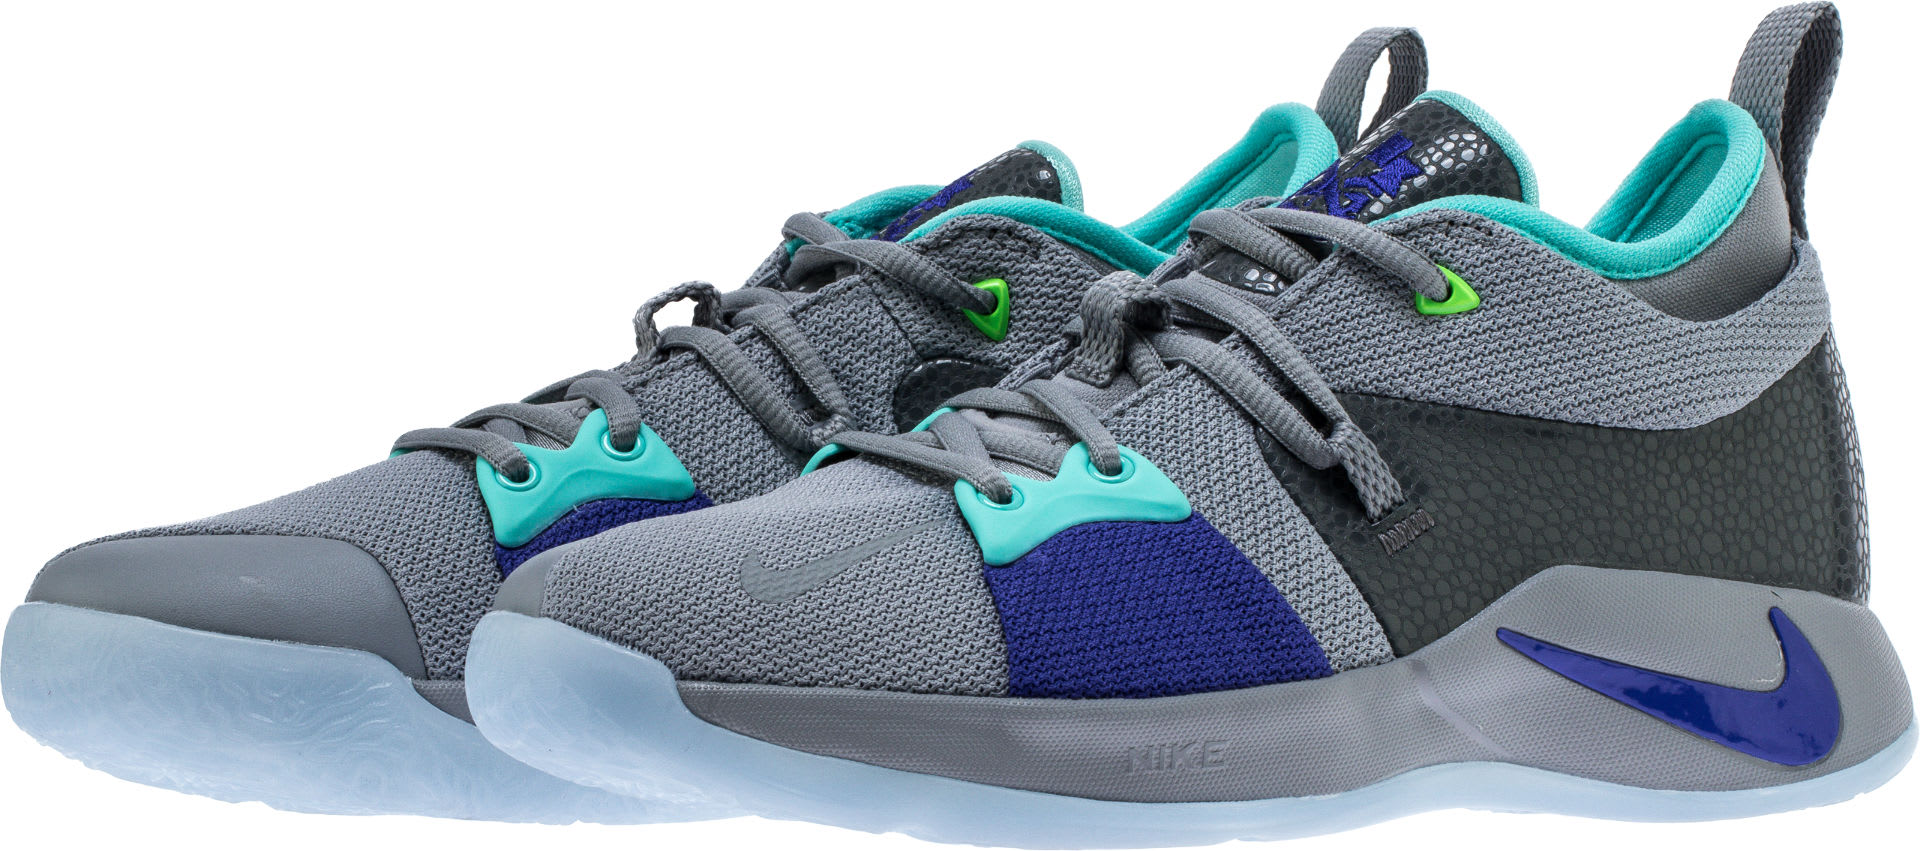 Nike PG2 Pure Platinum Neo Turquoise Wolf Grey Aurora Green Release Date AJ2039-002 Front